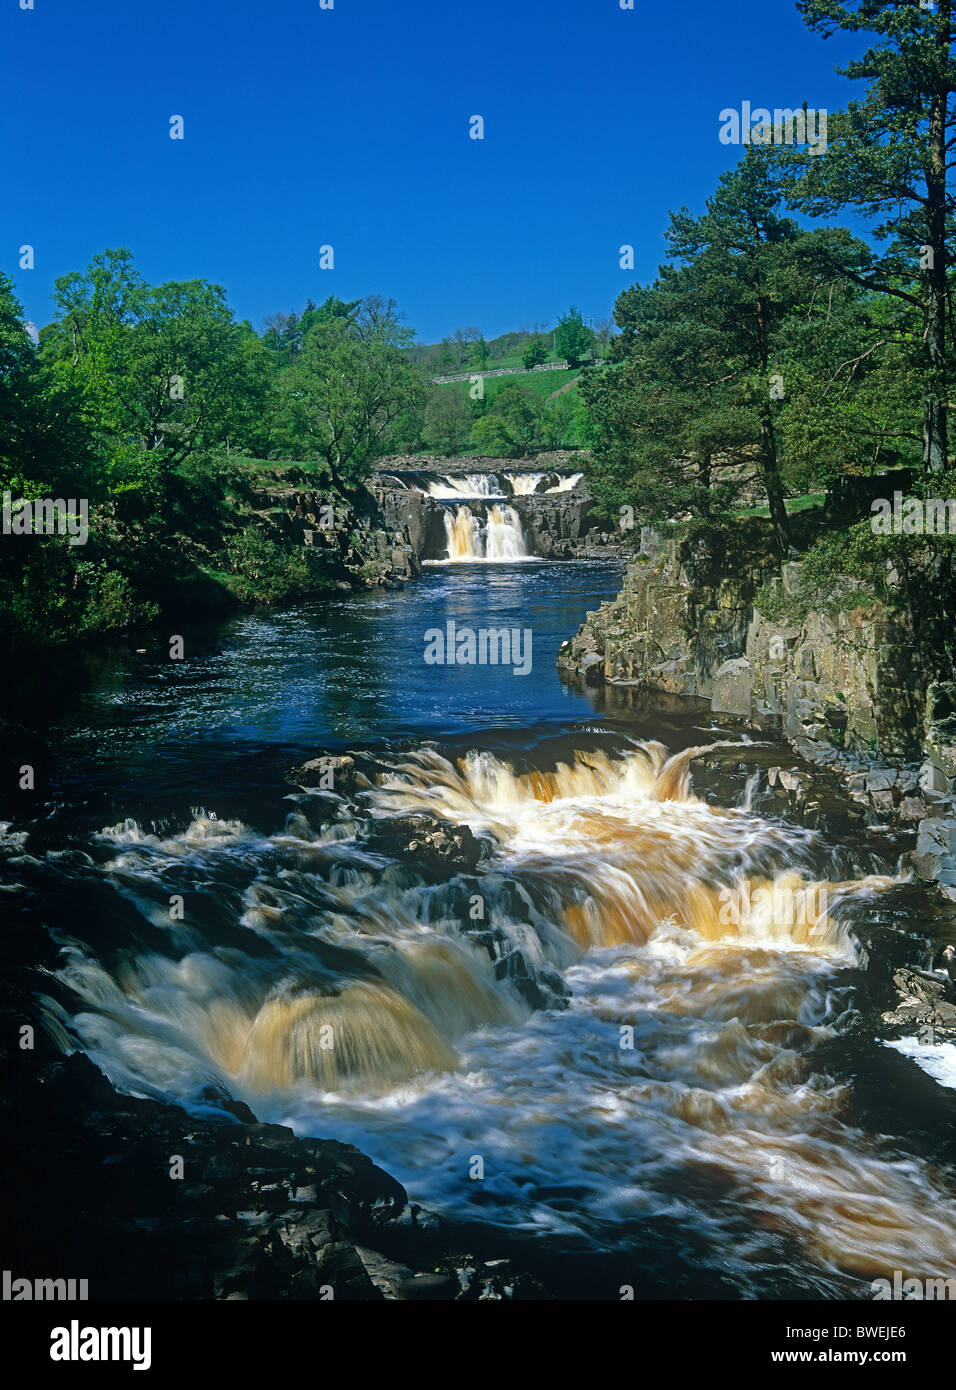 A summer view of Low Force Waterfall and the River Tees in Teesdale, County Durham - Stock Image